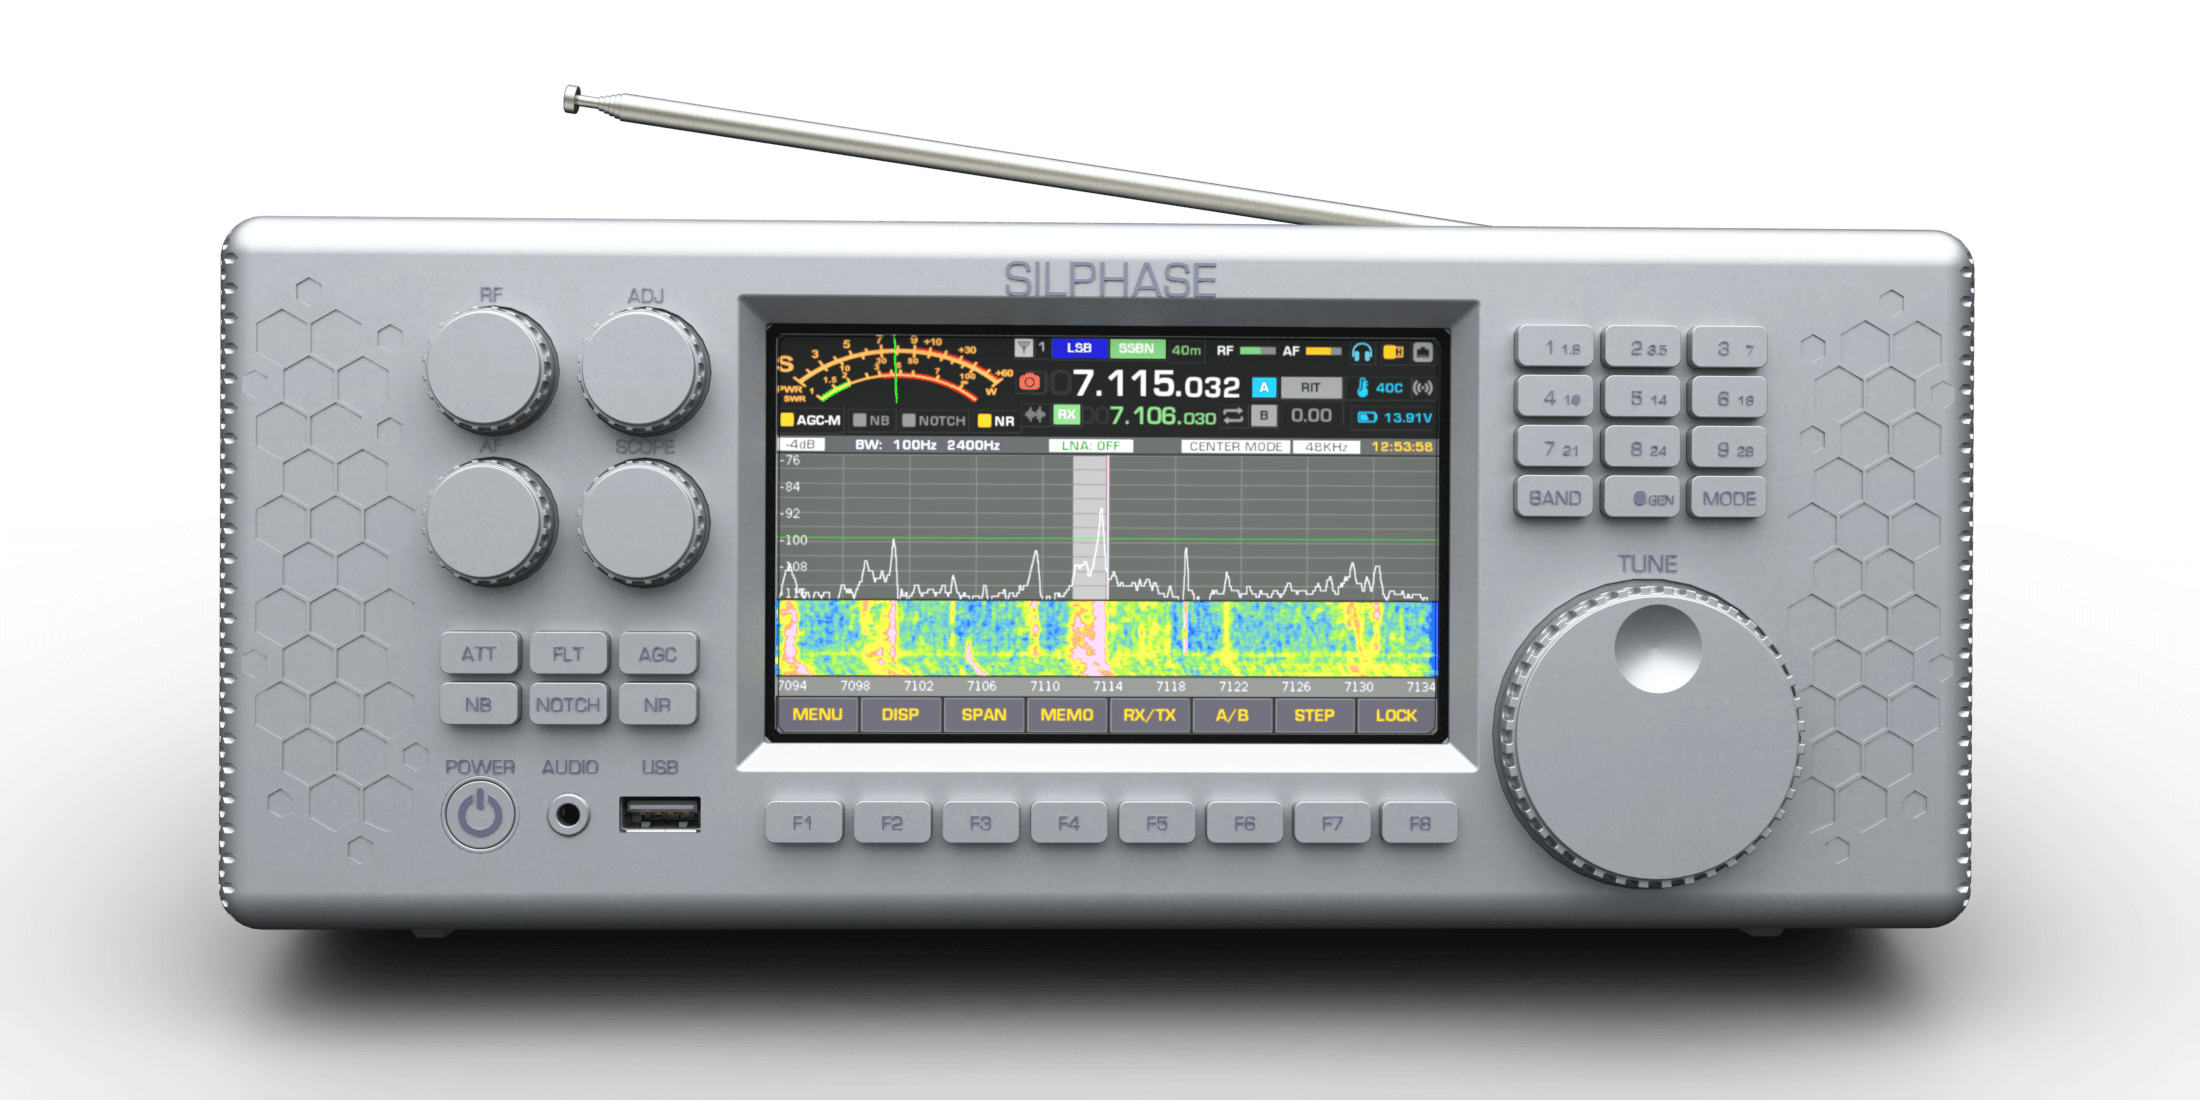 The new Silphase R1 SDR receiver